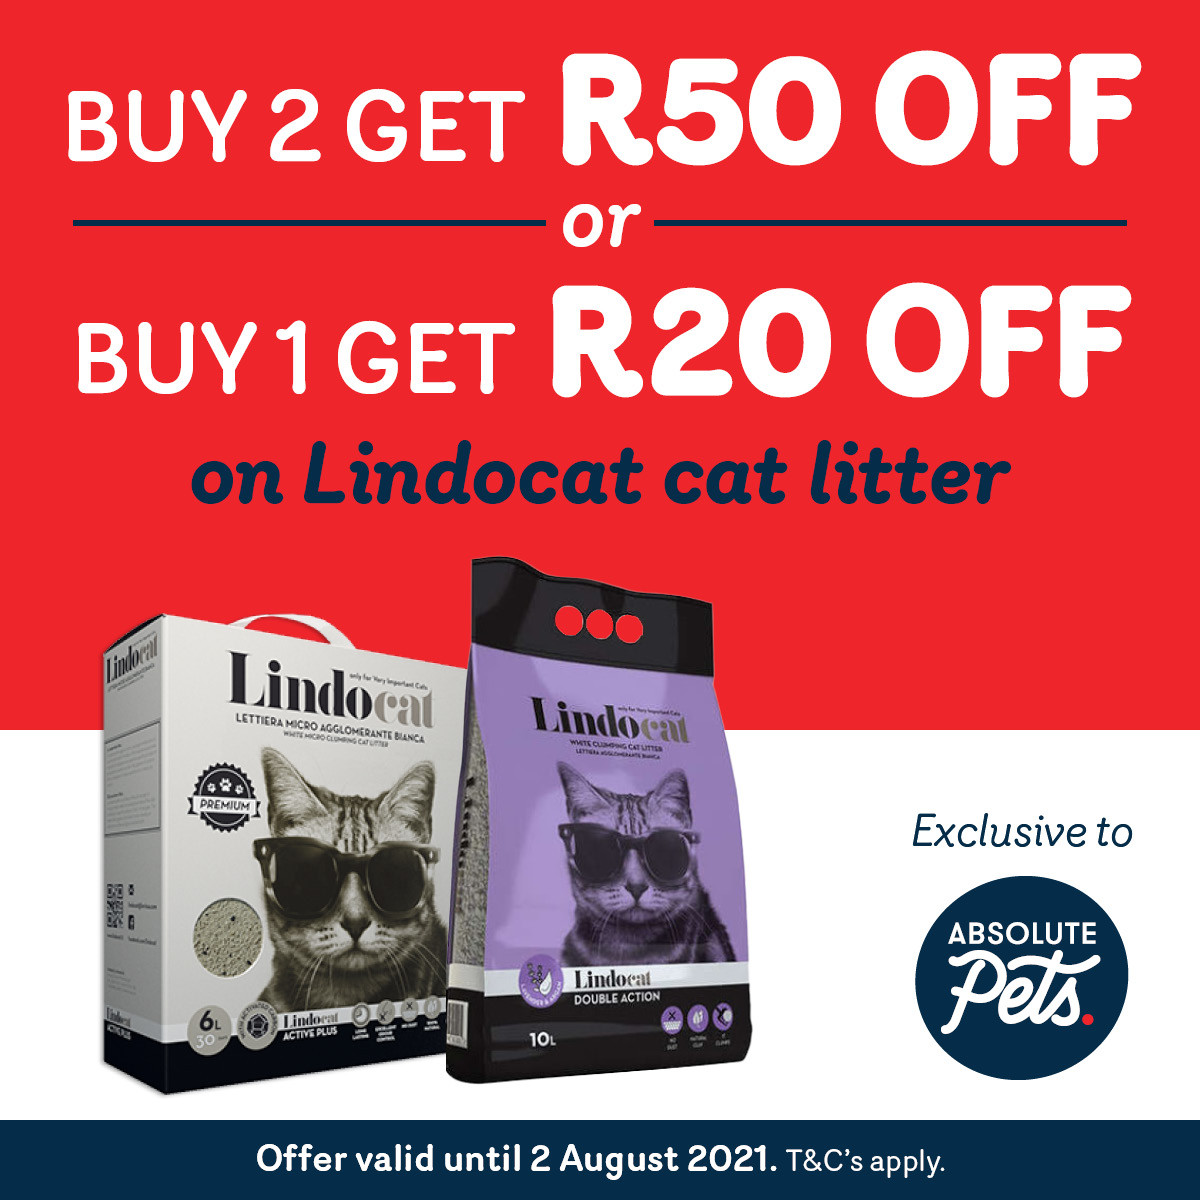 Absolute Pets Lindocat Promotion